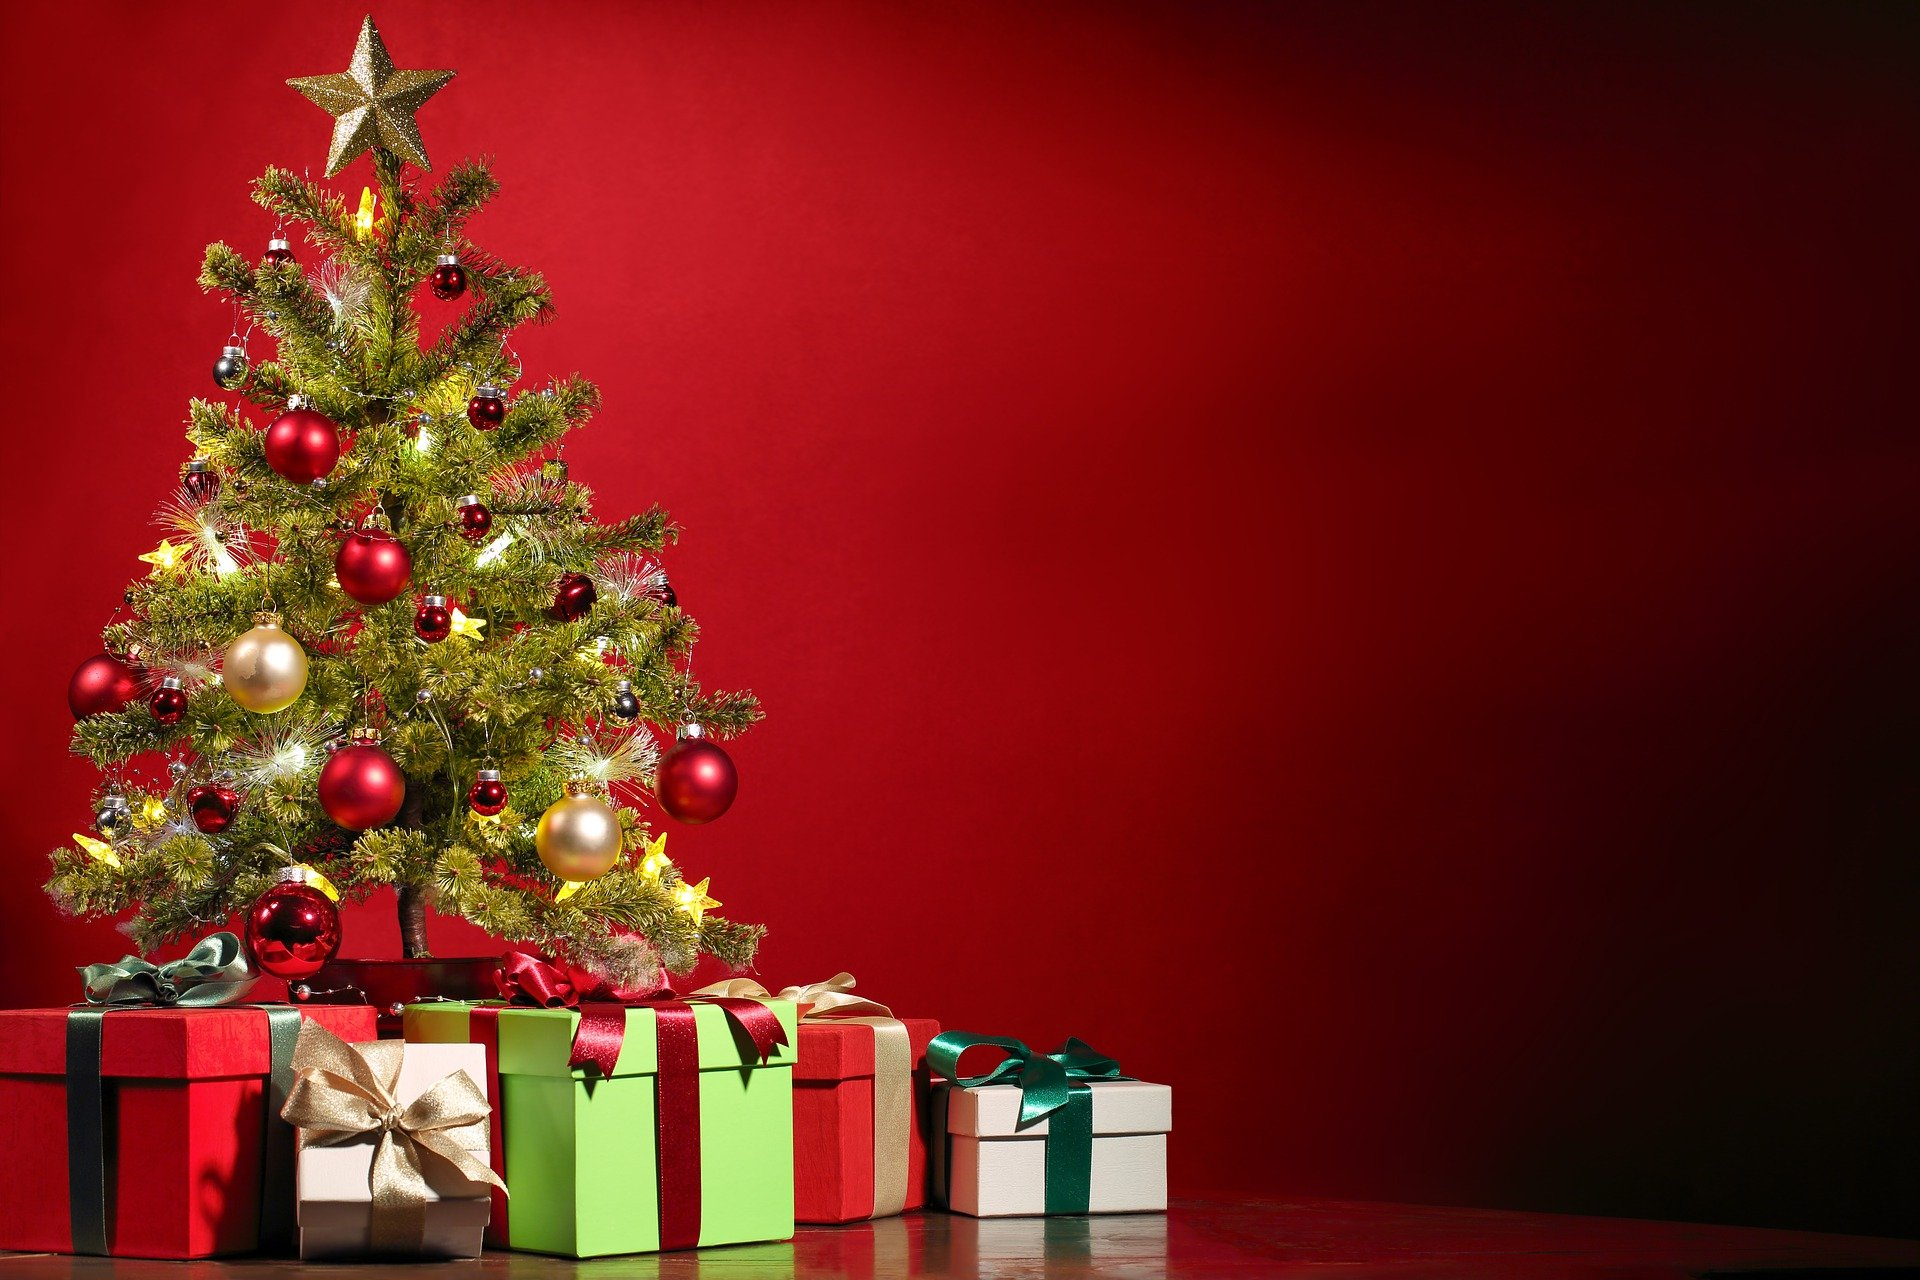 christmas day 2021 background pictures